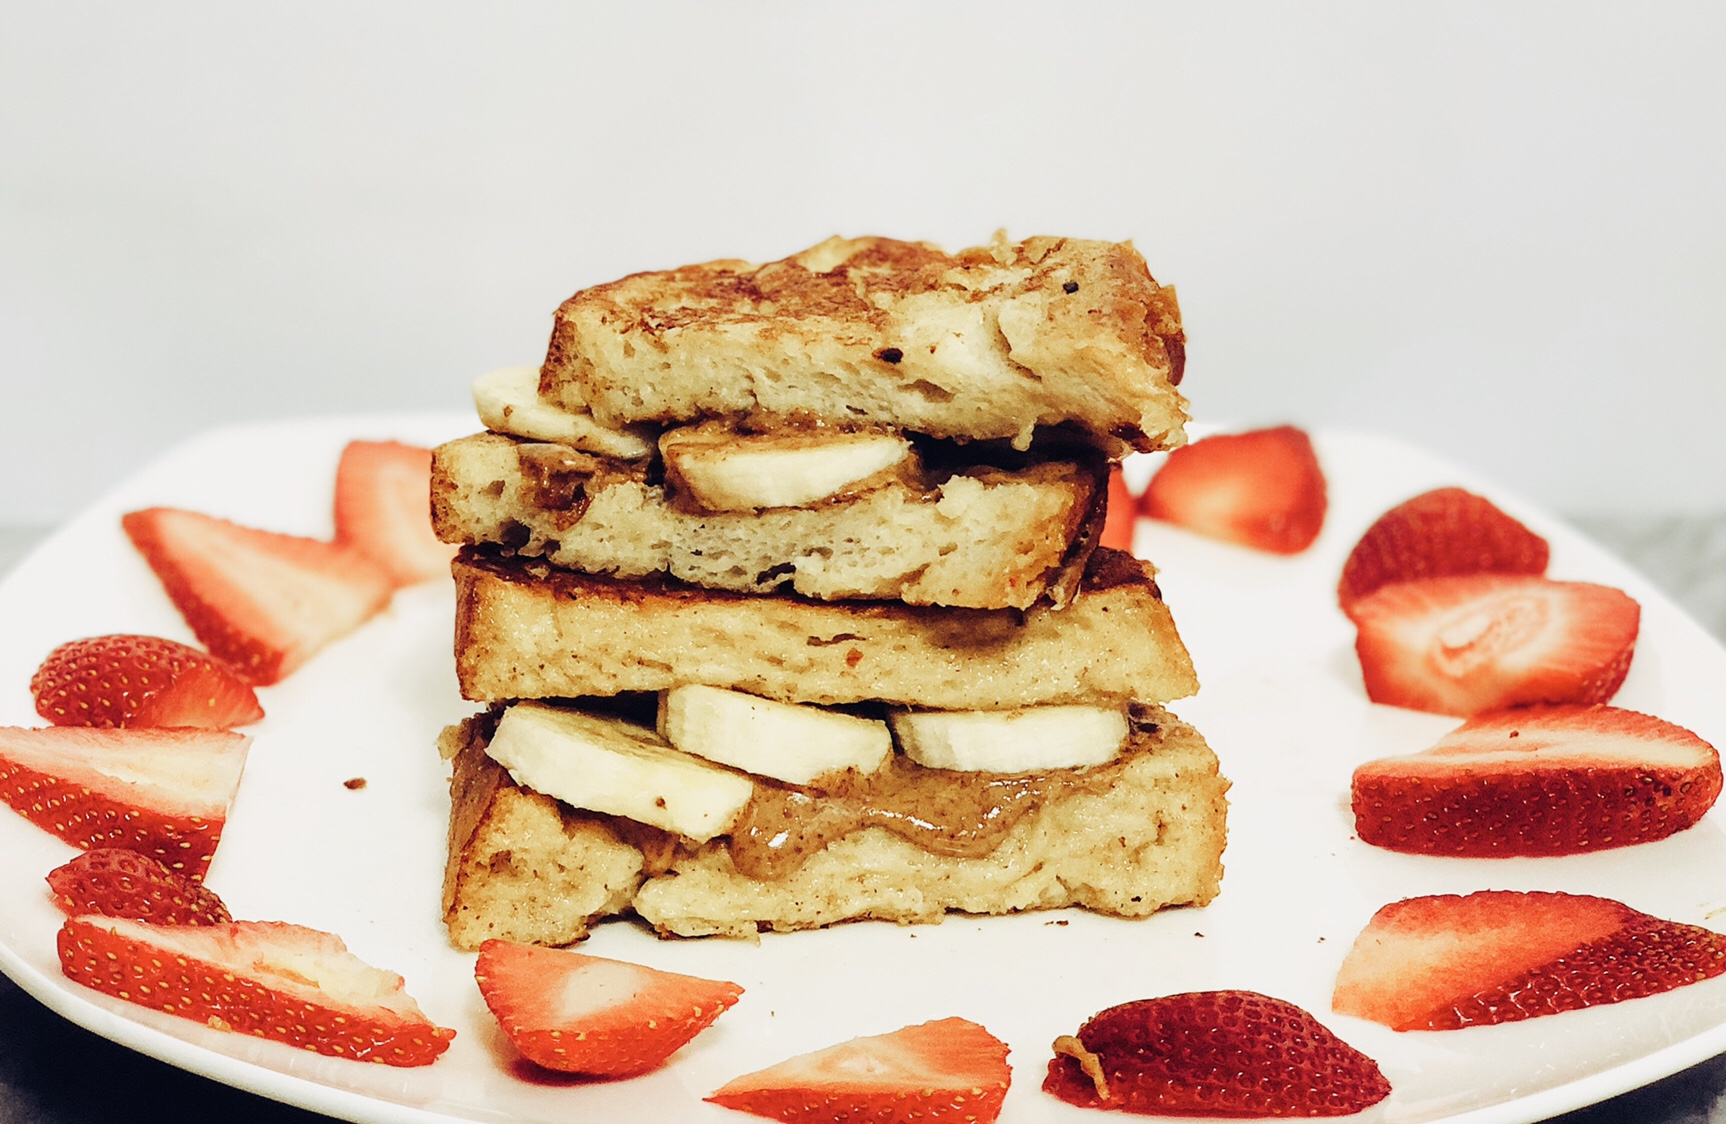 Almond butter-banana stuffed French toast